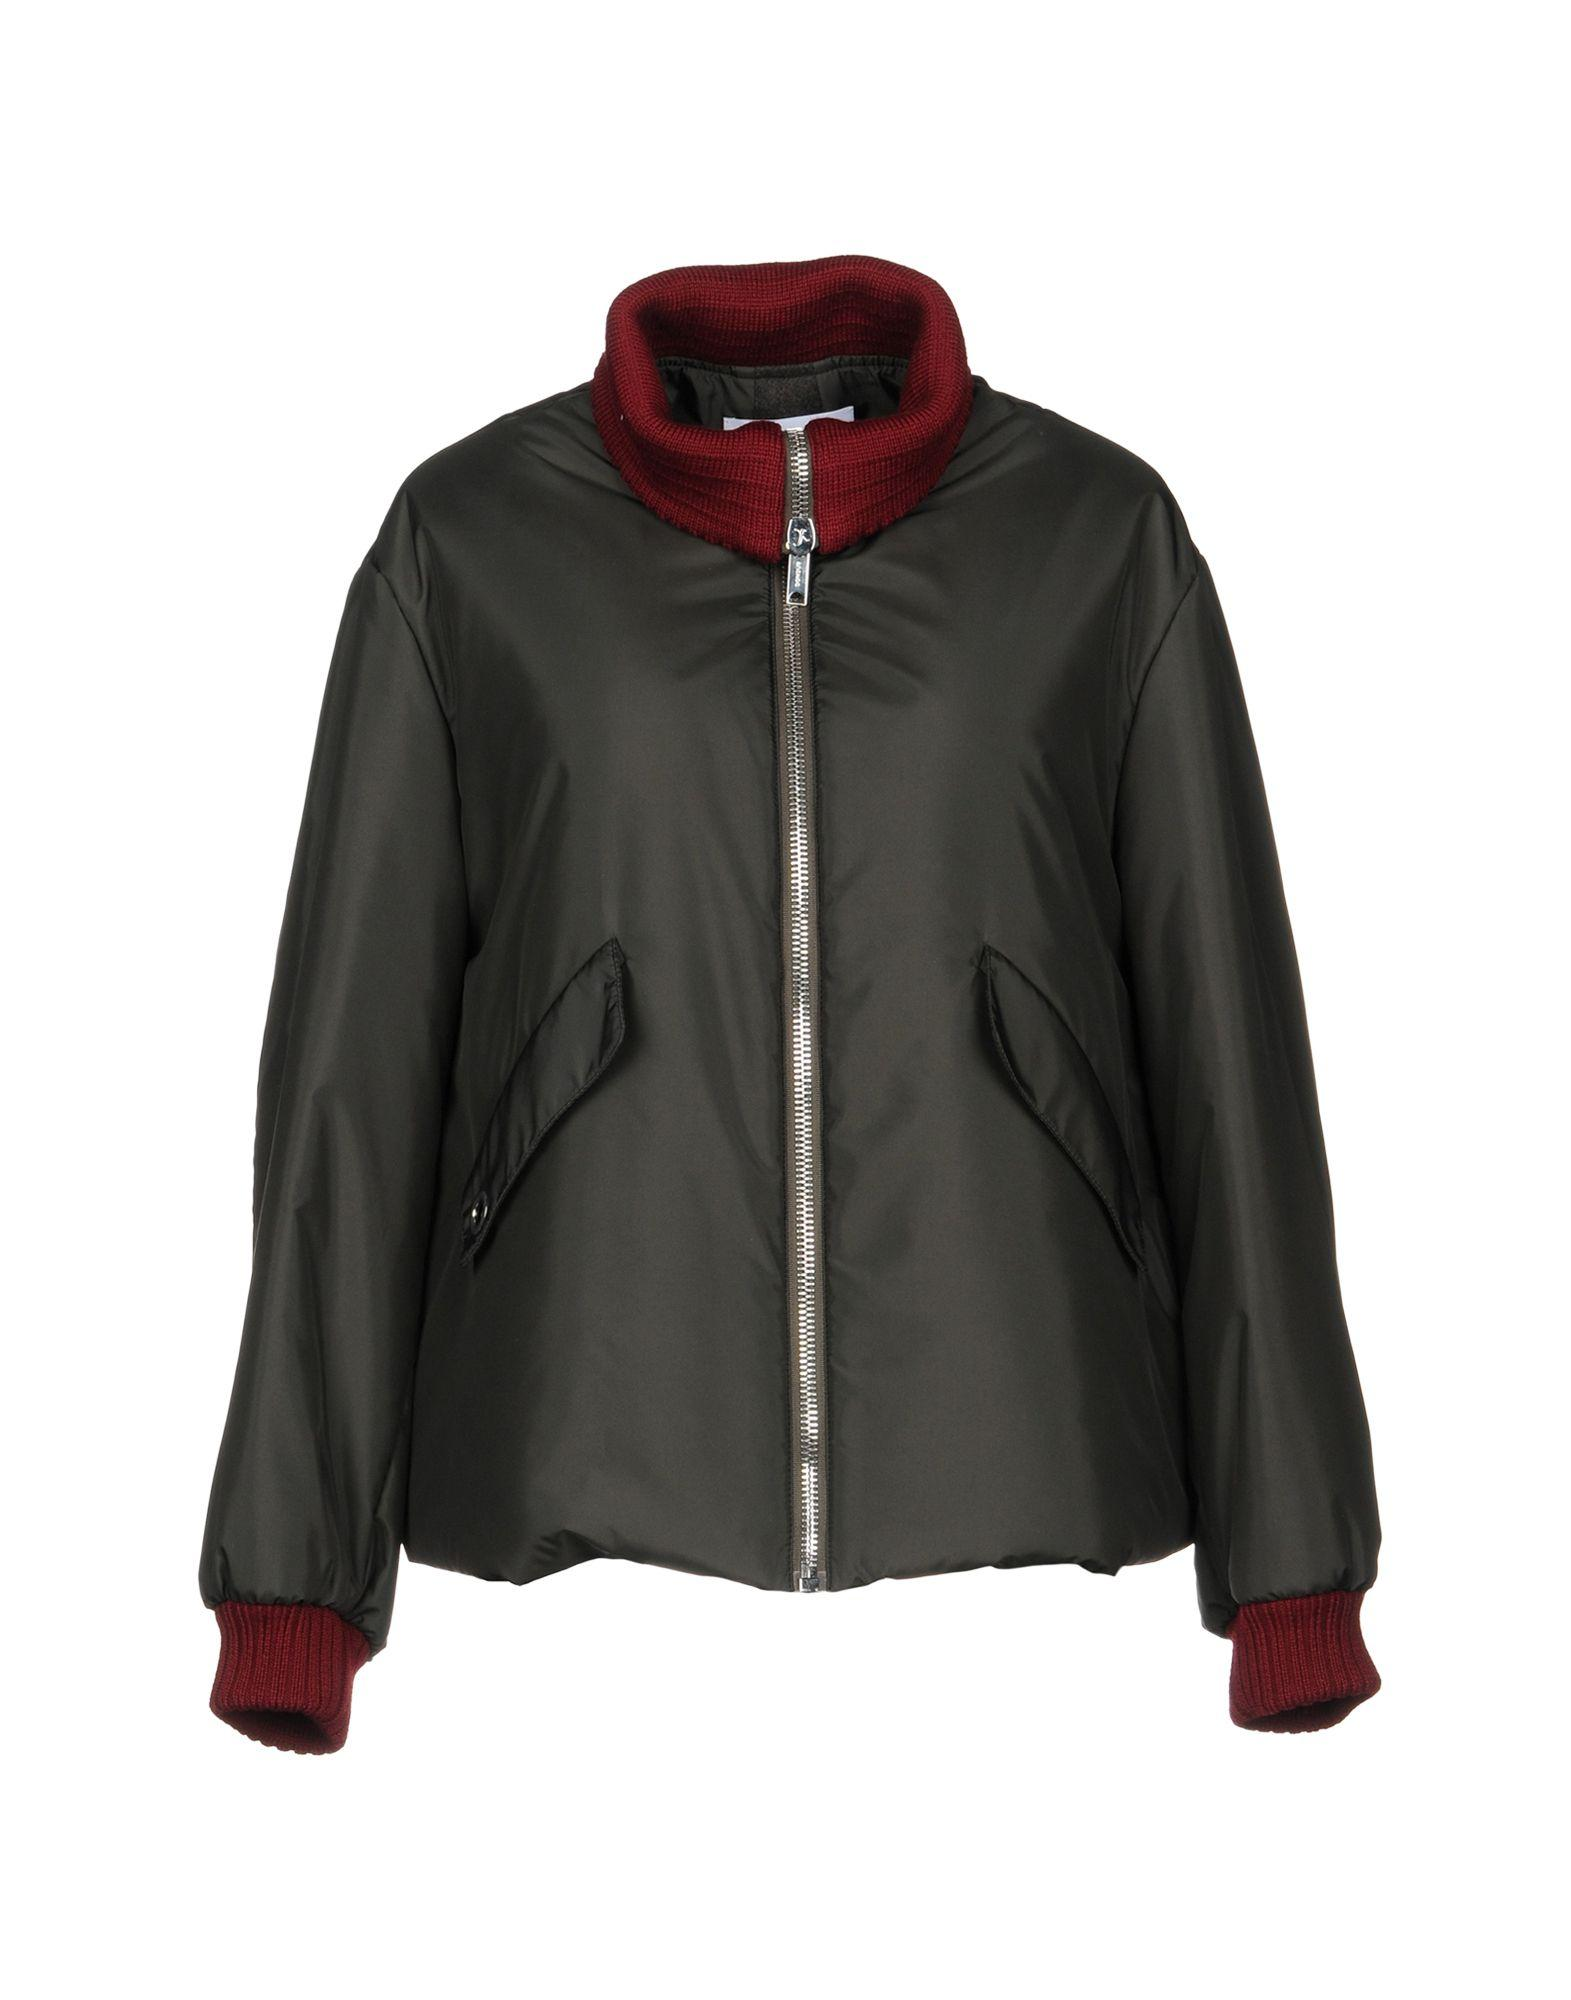 Dondup Jacket In Military Green